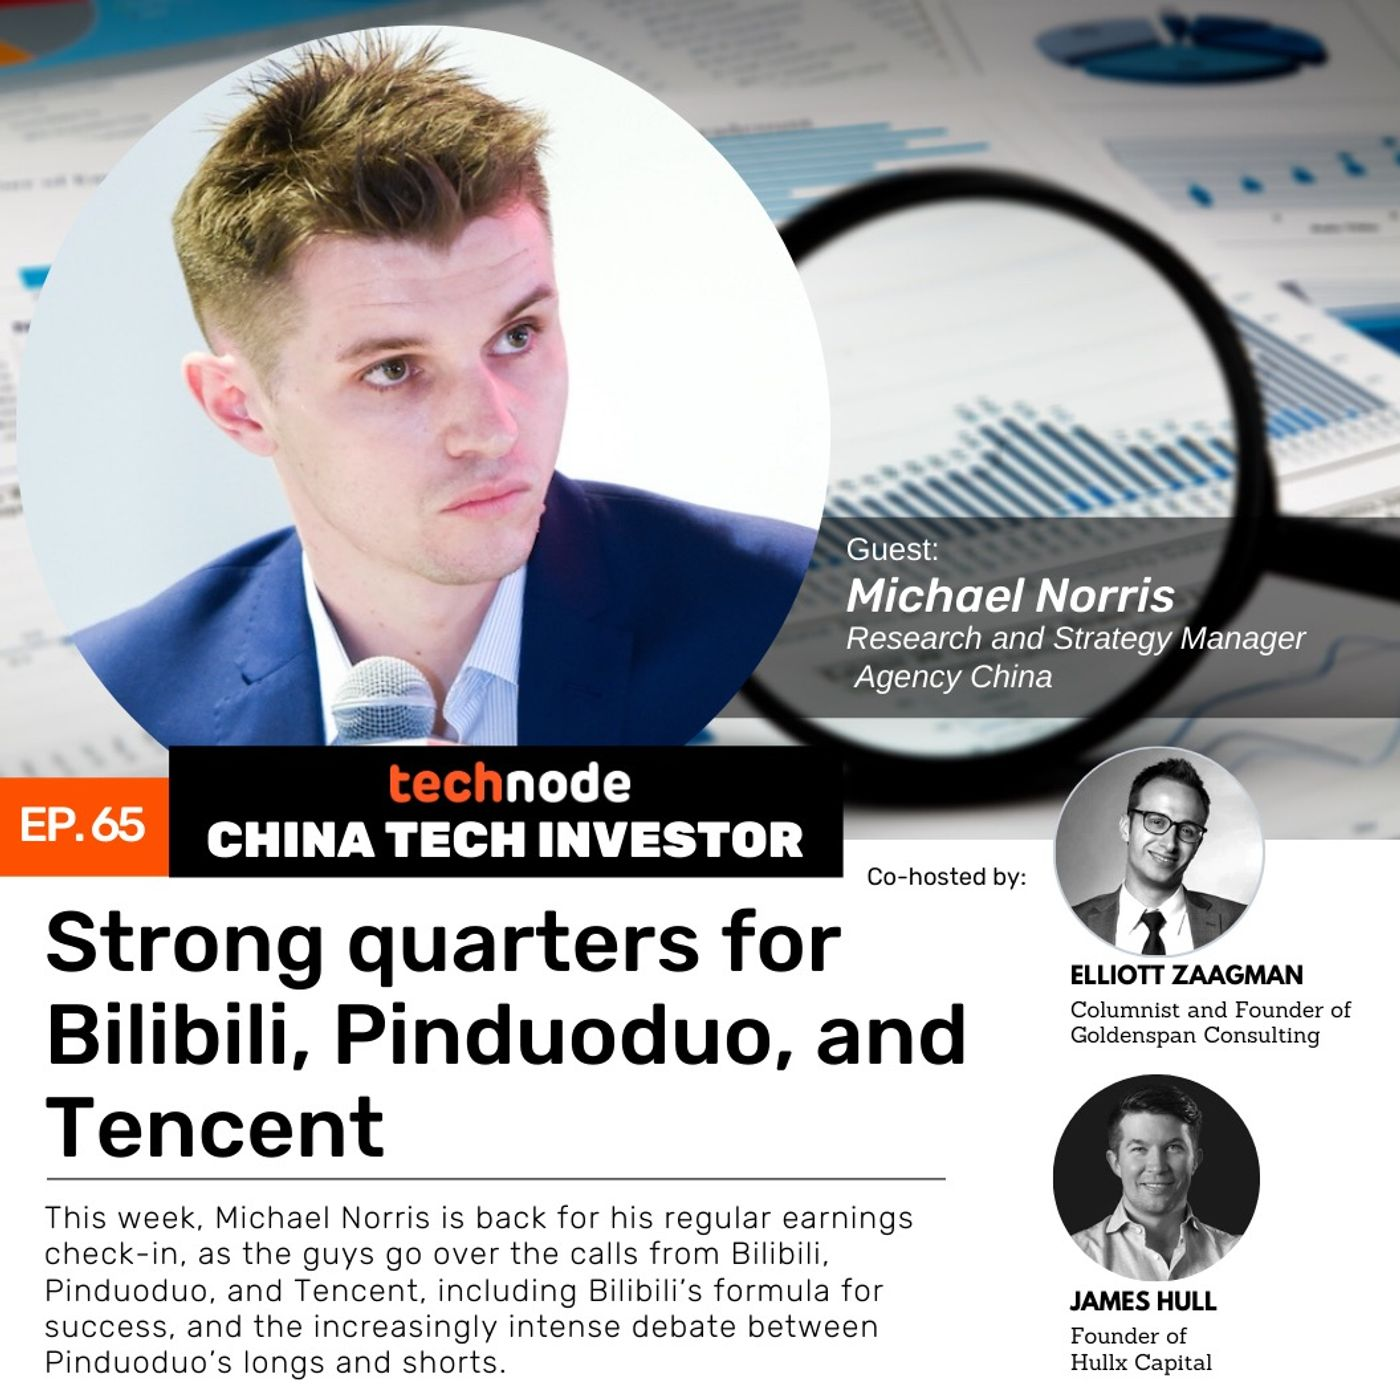 CTI 65: Strong quarters for Bilibili, Pinduoduo, and Tencent, with Michael Norris